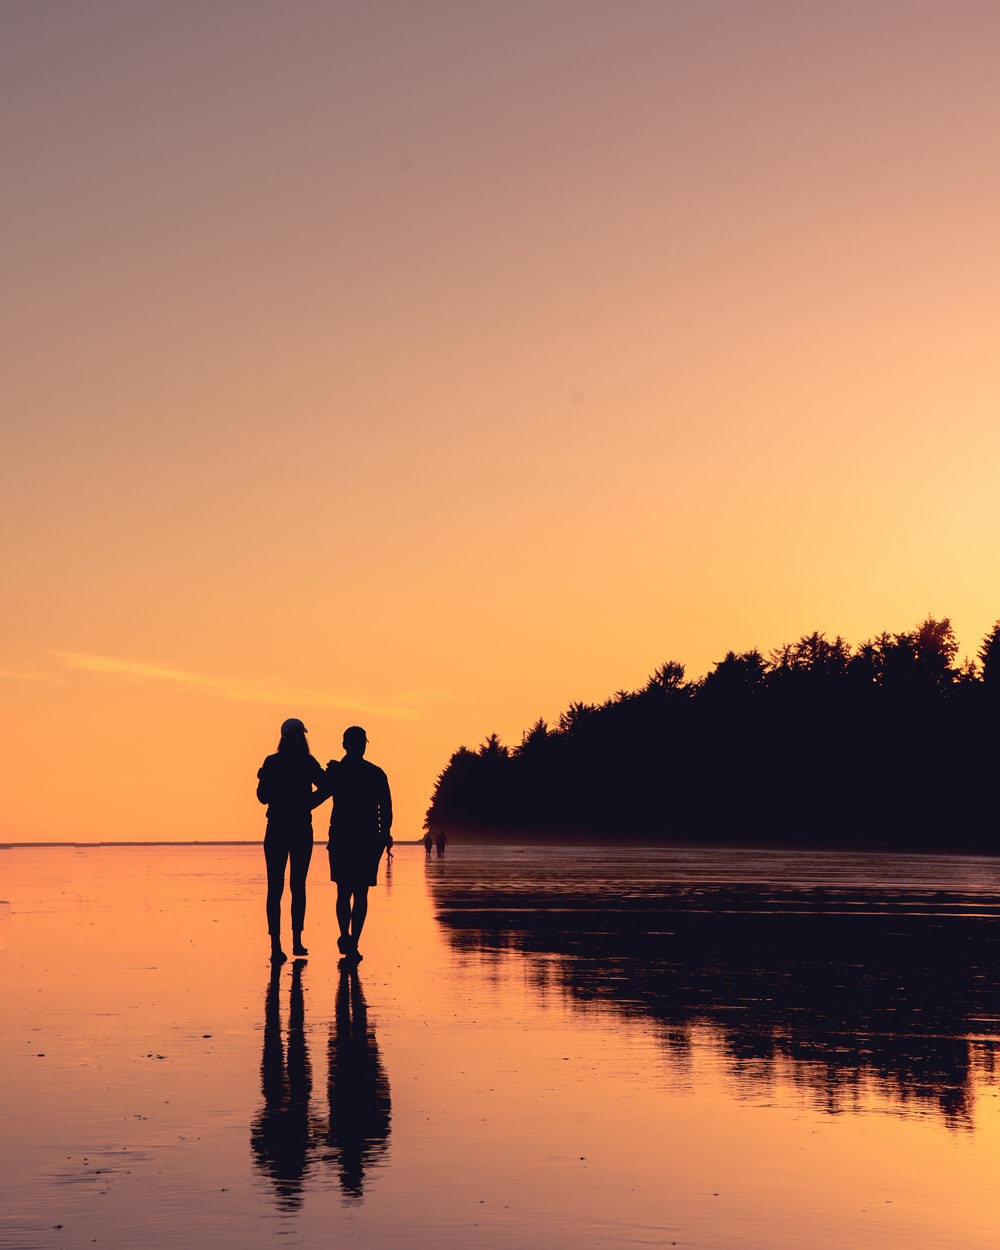 Romance Pictures [HD] | Download Free Images on Unsplash